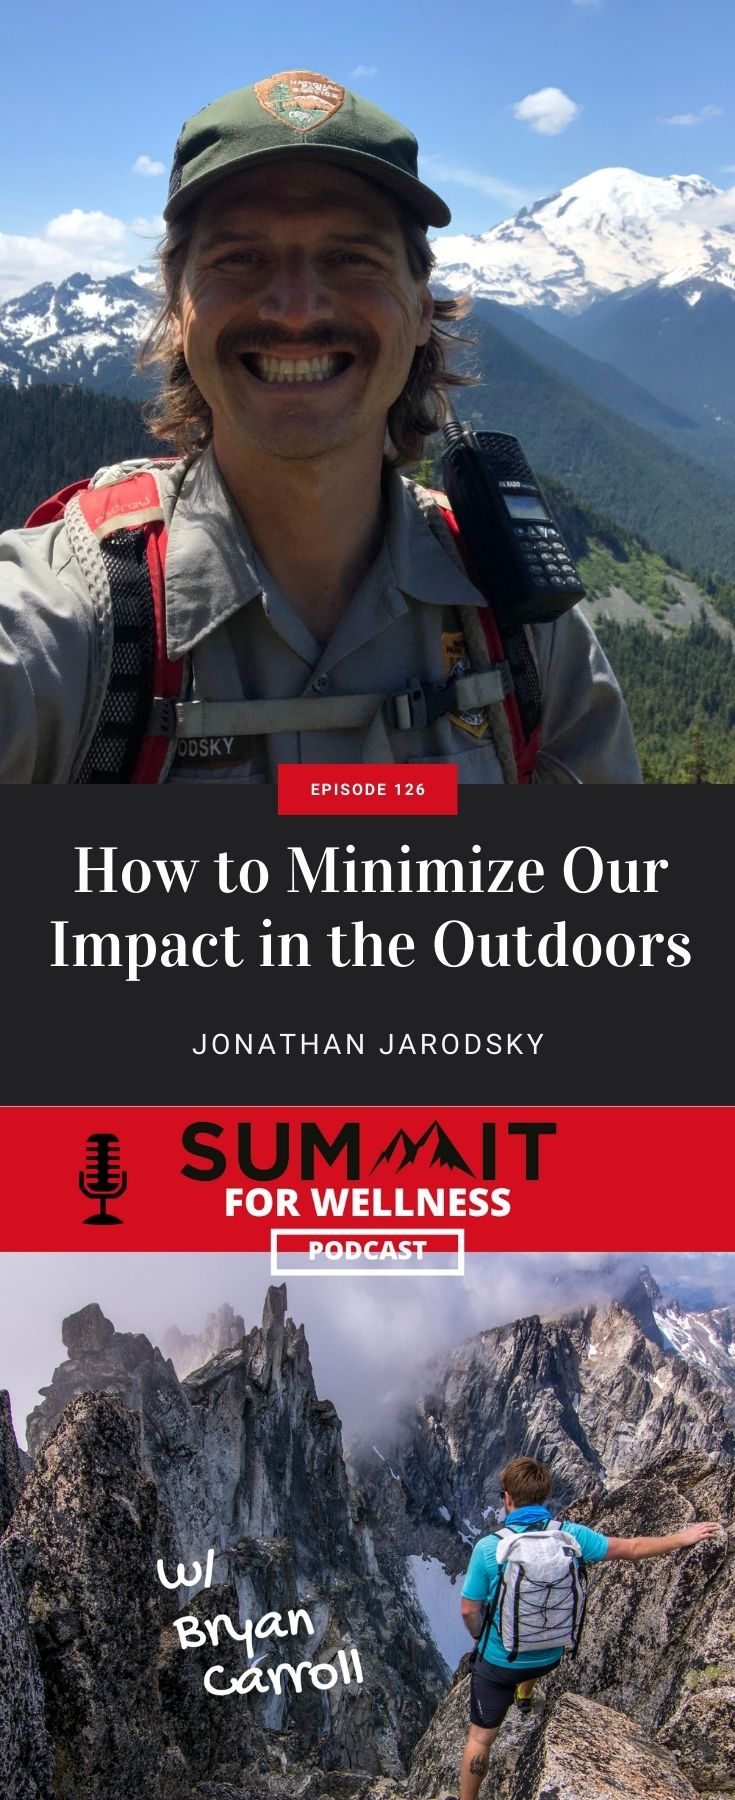 Learn from Jonathan Jarodsky different ways to minimize human impact on the outdoors